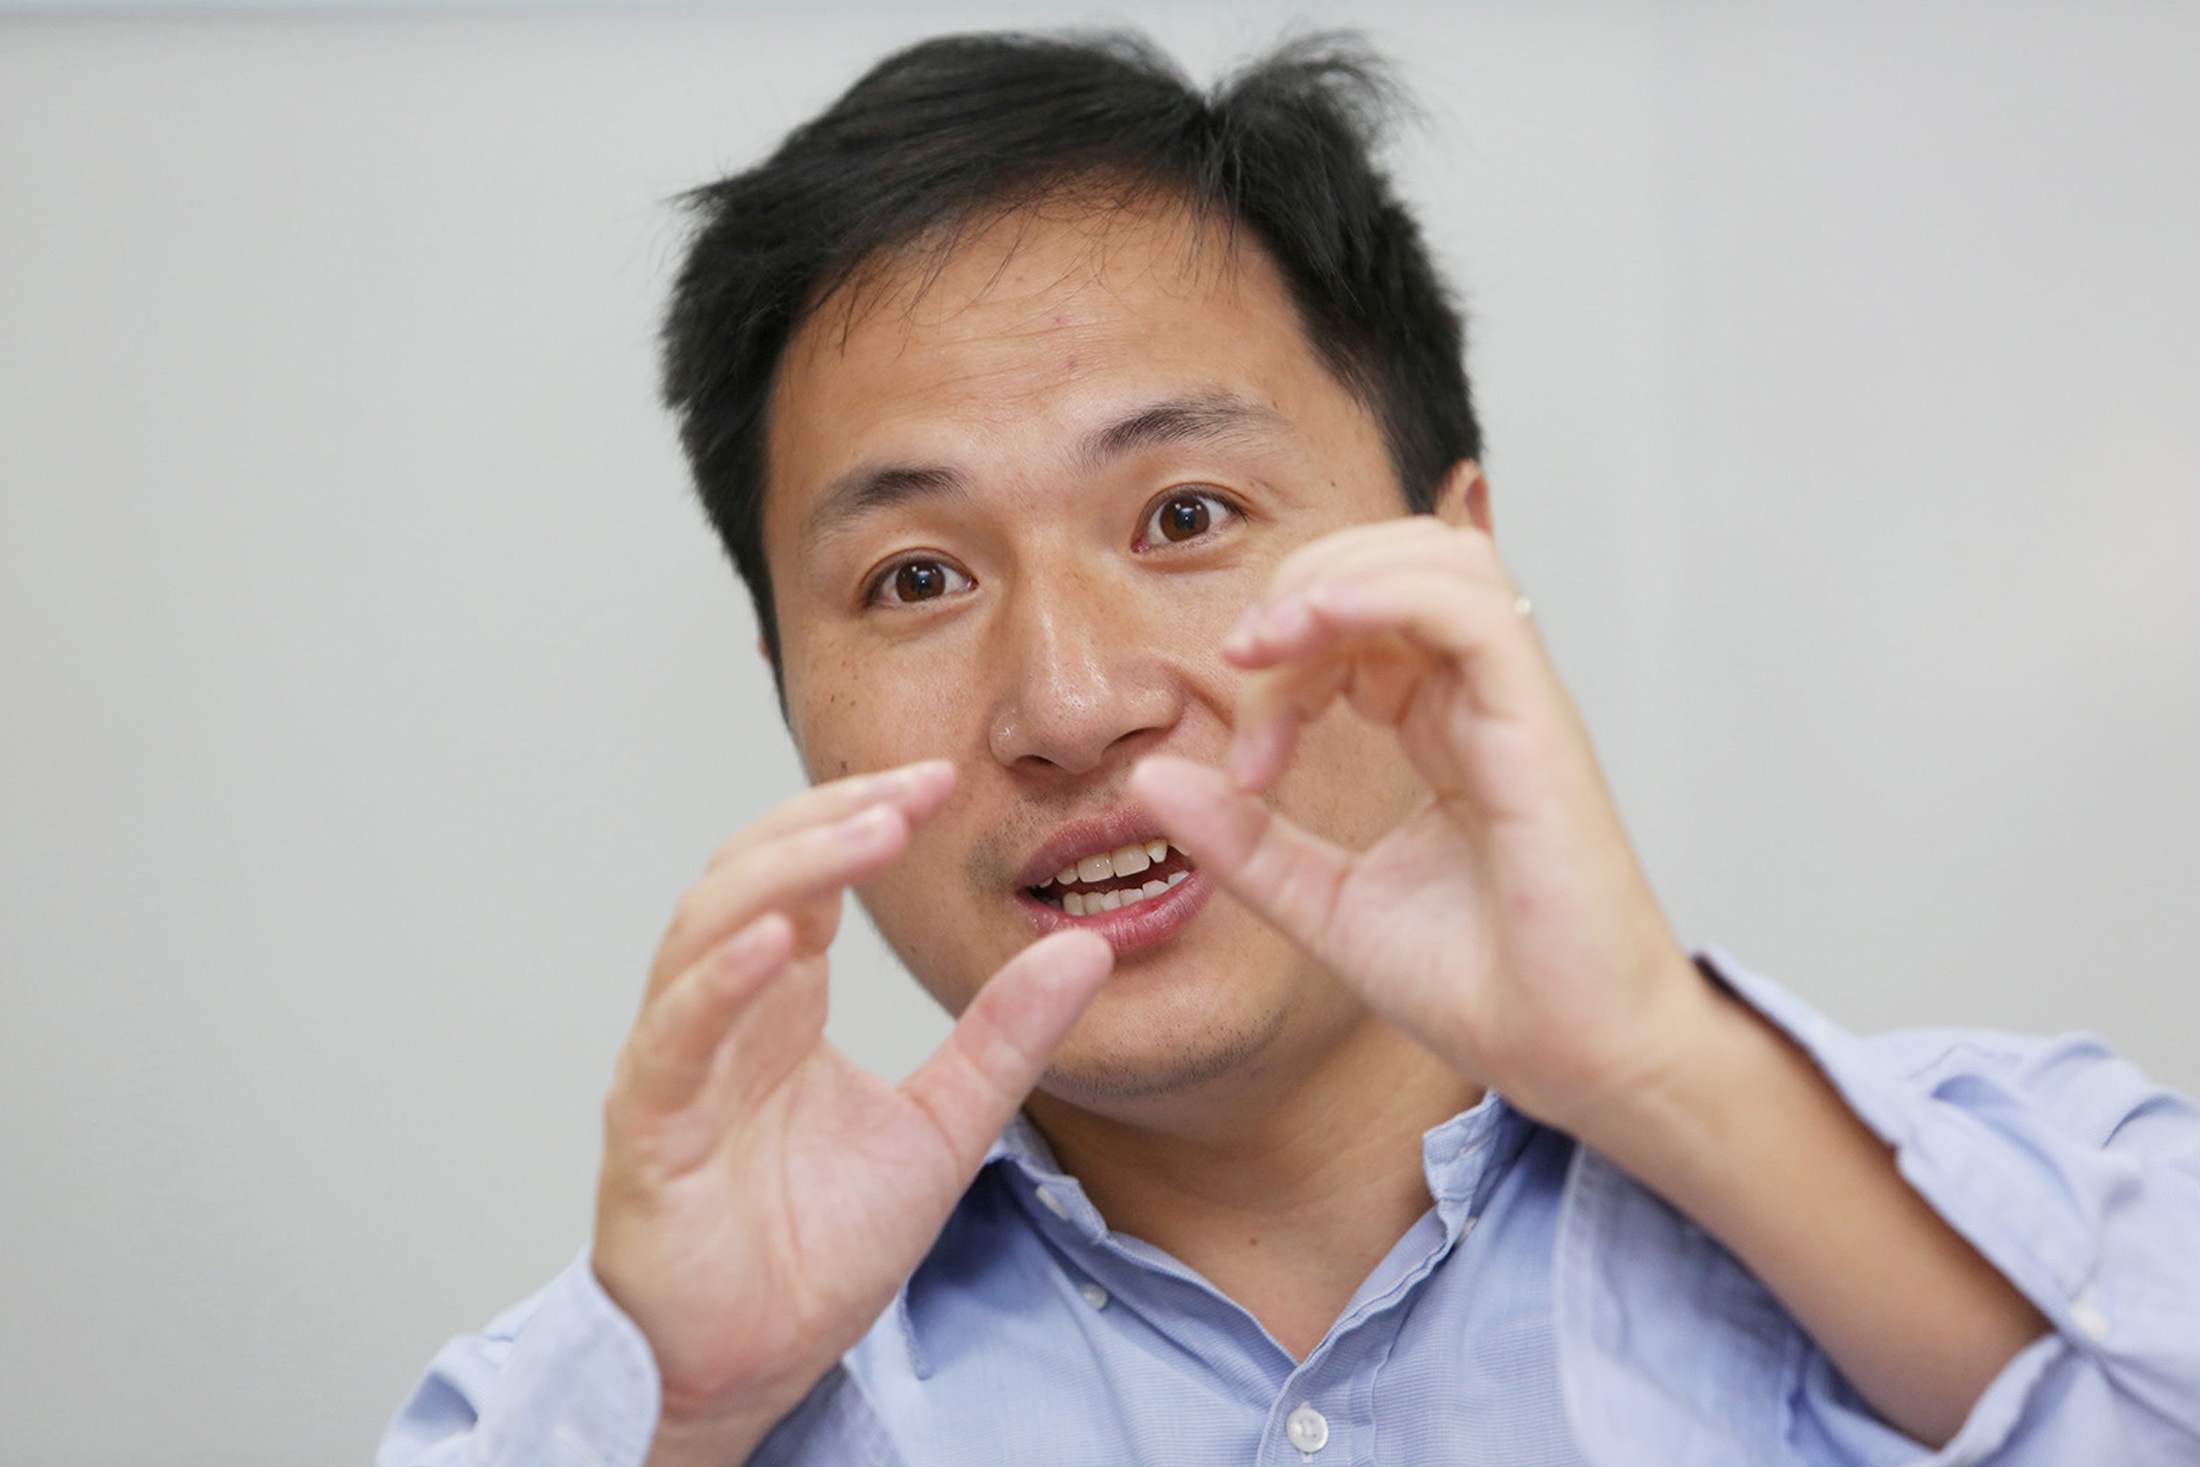 FILE PHOTO: Scientist He Jiankui speaks at his company Direct Genomics in Shenzhen, Guangdong province, China July 18, 2017. Picture taken July 18, 2017. REUTERS/Stringer